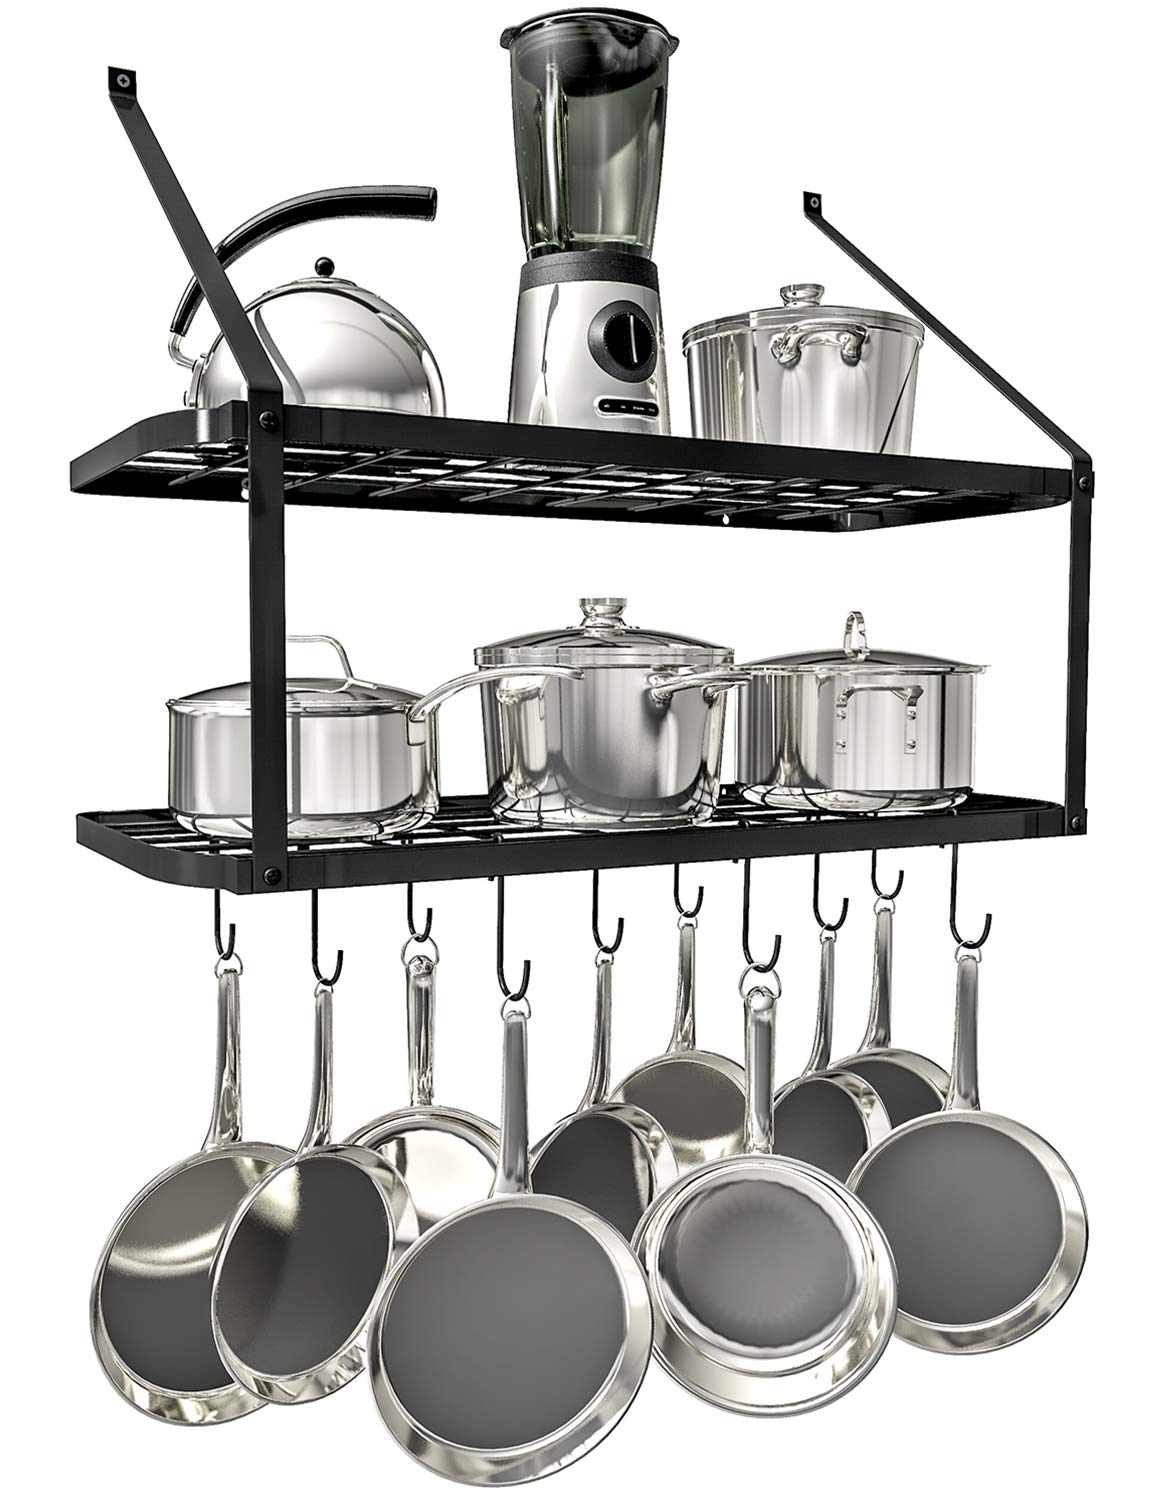 VDOMUS Shelf Pot Rack Wall Mounted Pan Hanging Racks 2 Tire (Black) by Vdomus